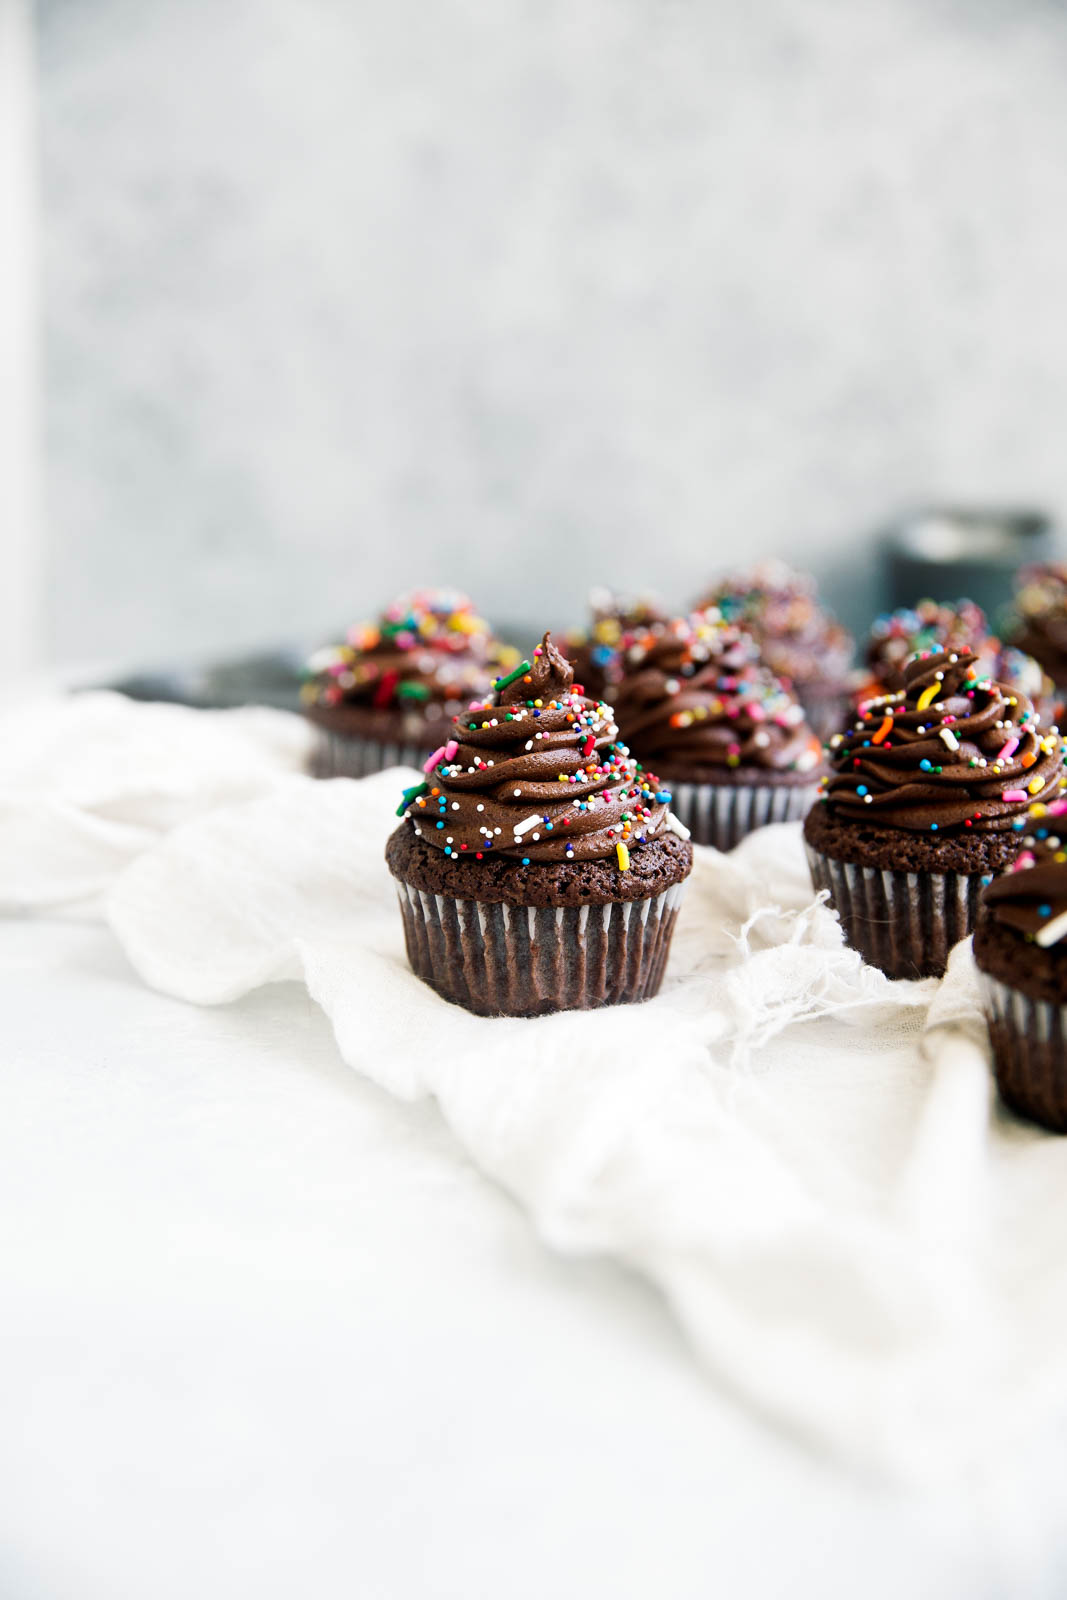 Chocolate Brownie Cupcakes on towel